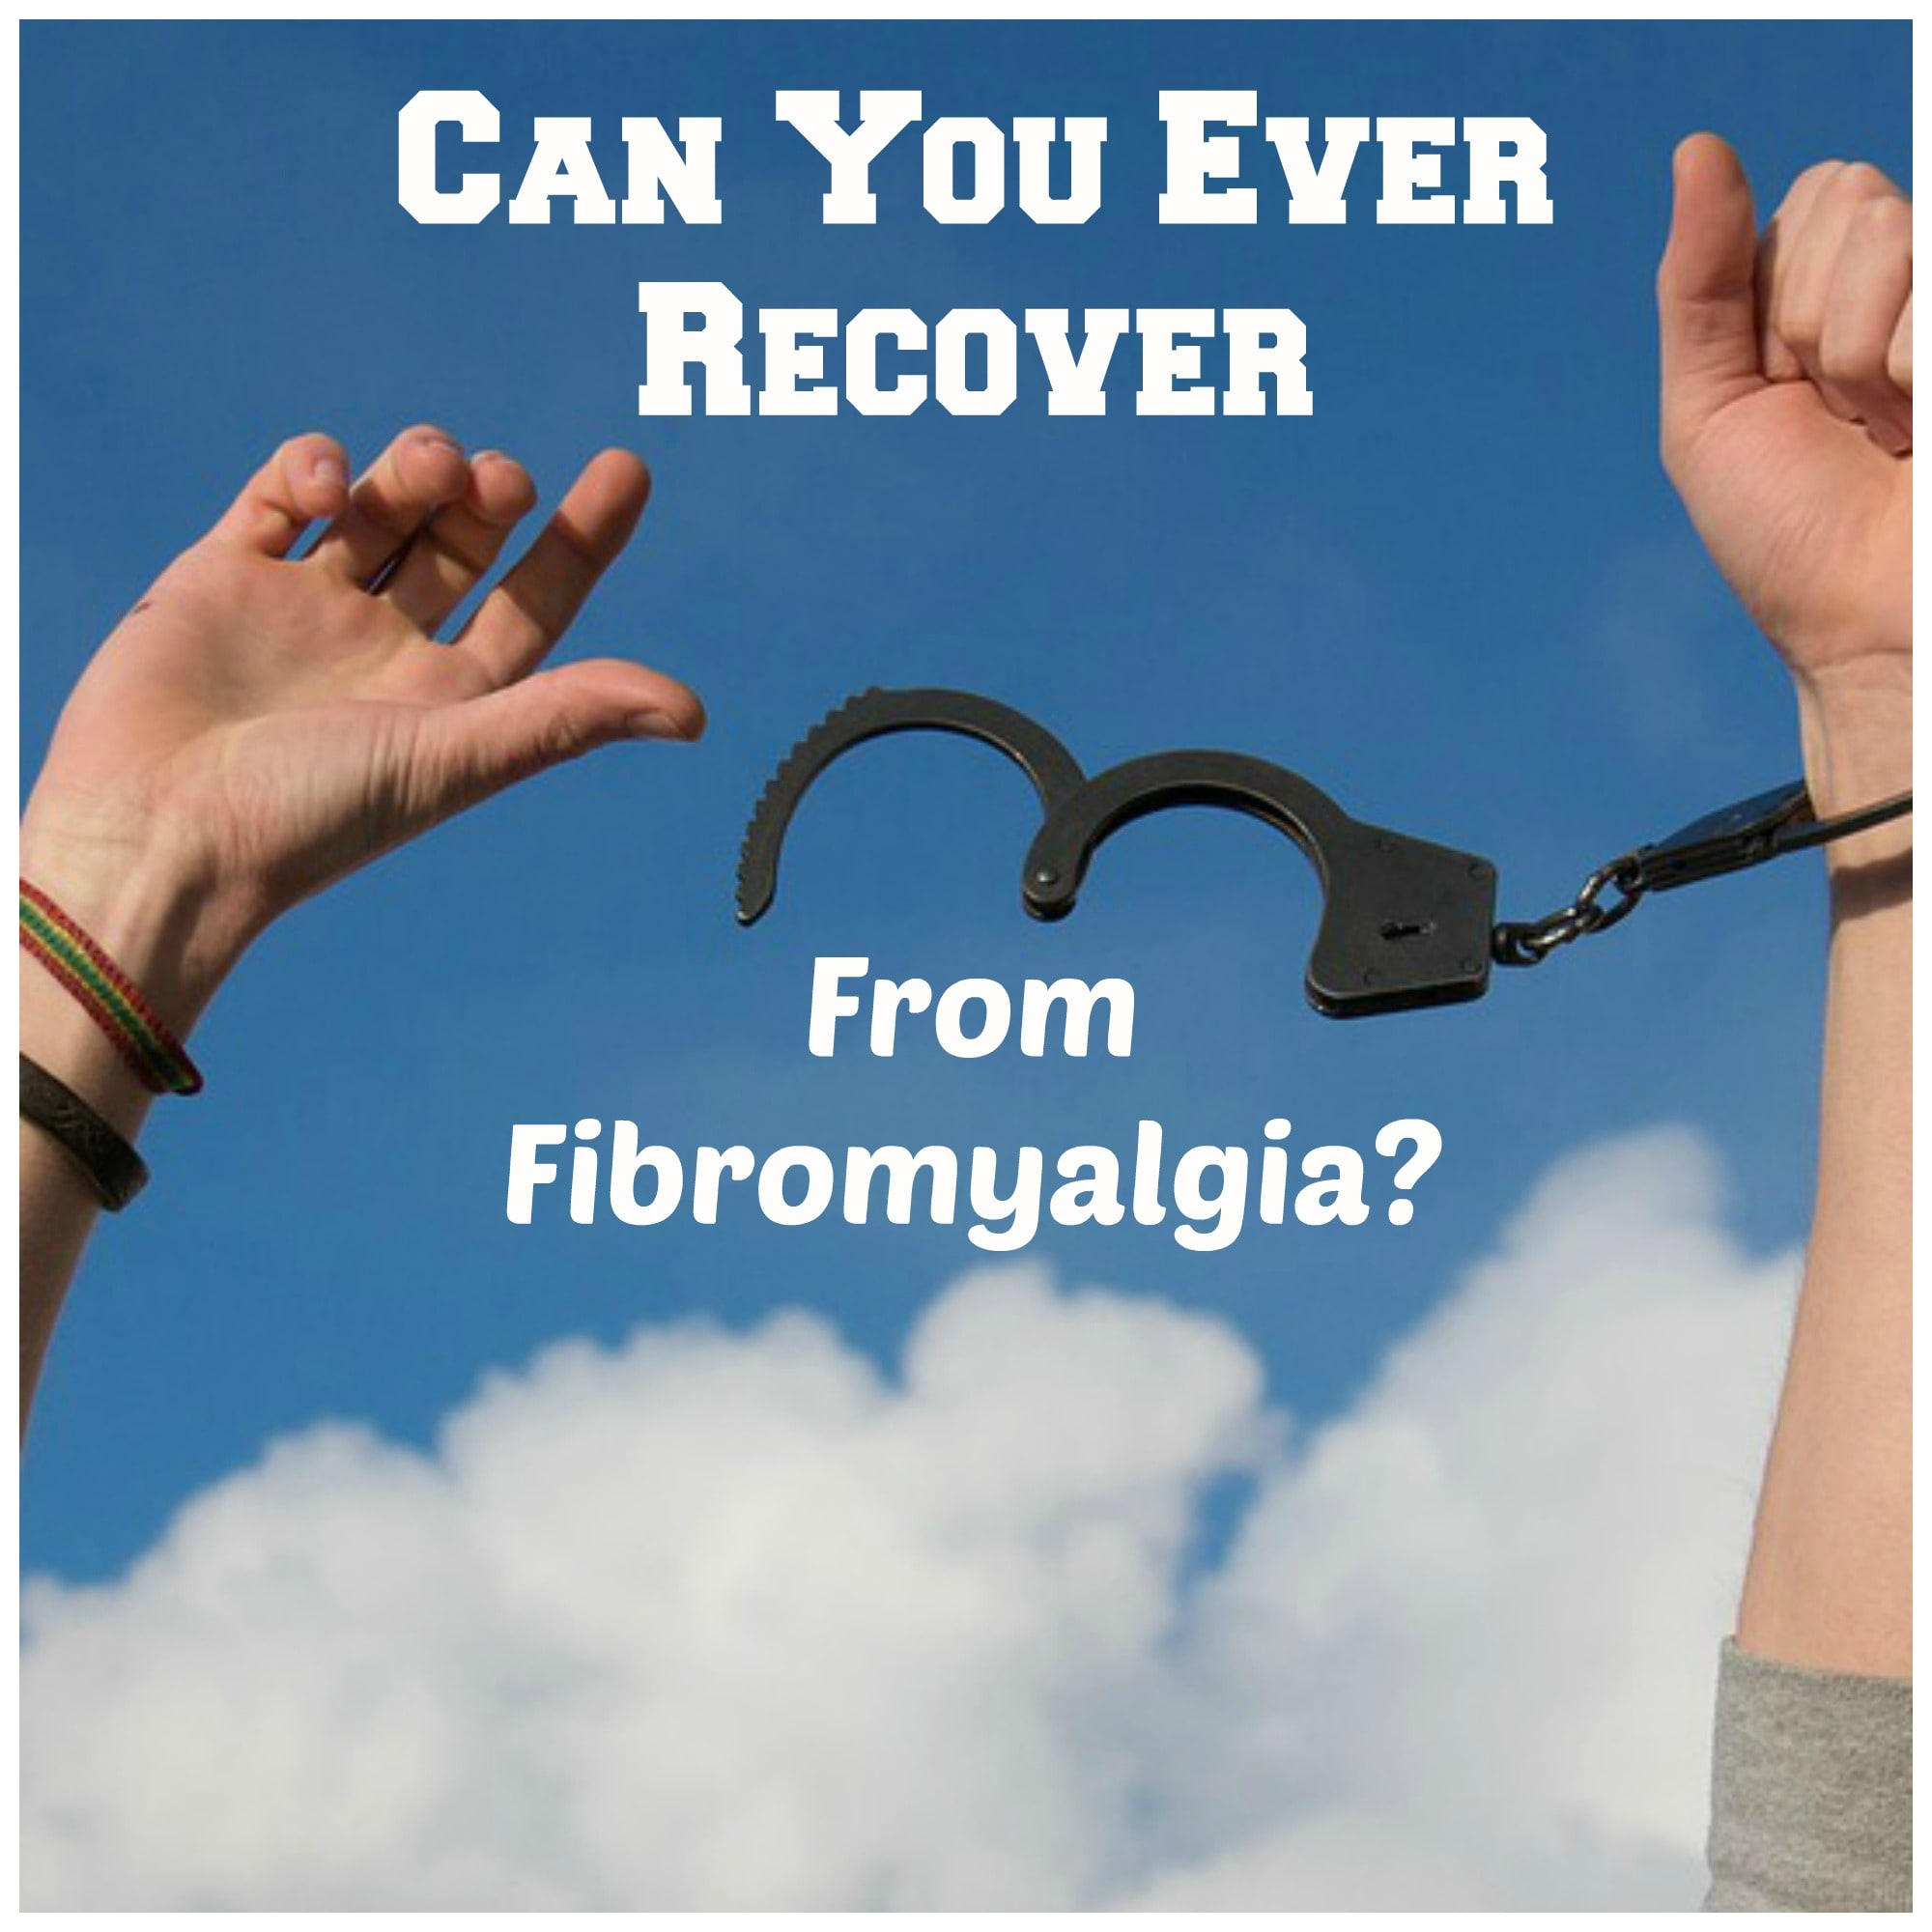 Can You Ever Recover From Fibromyalgia?